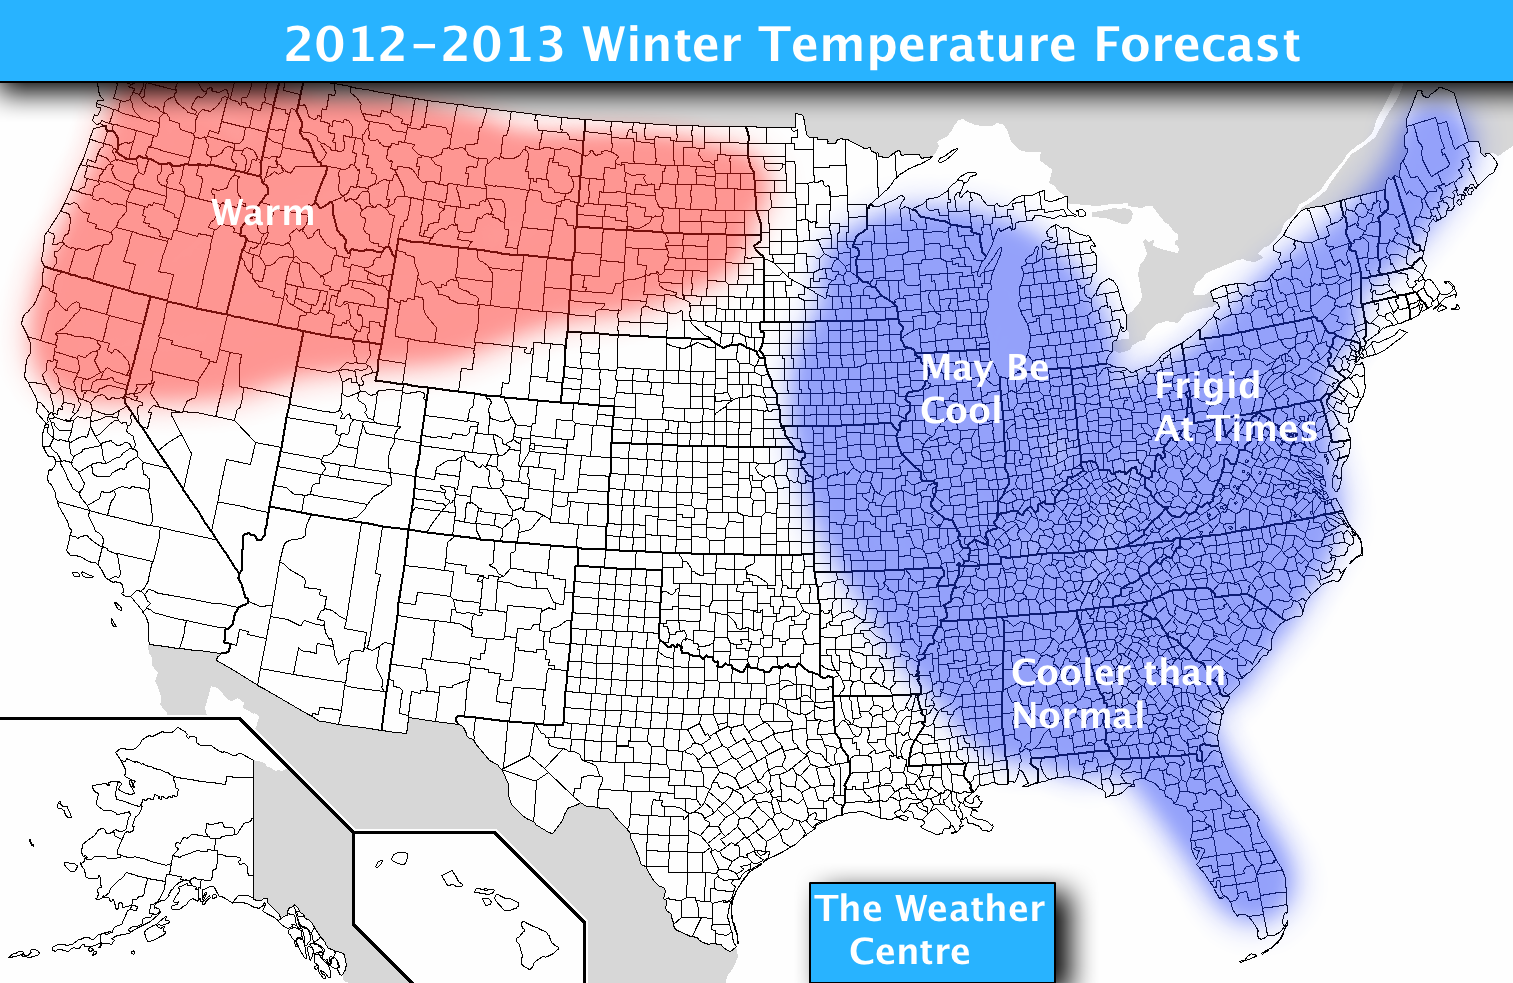 believe the winter will end up mainly cooler than